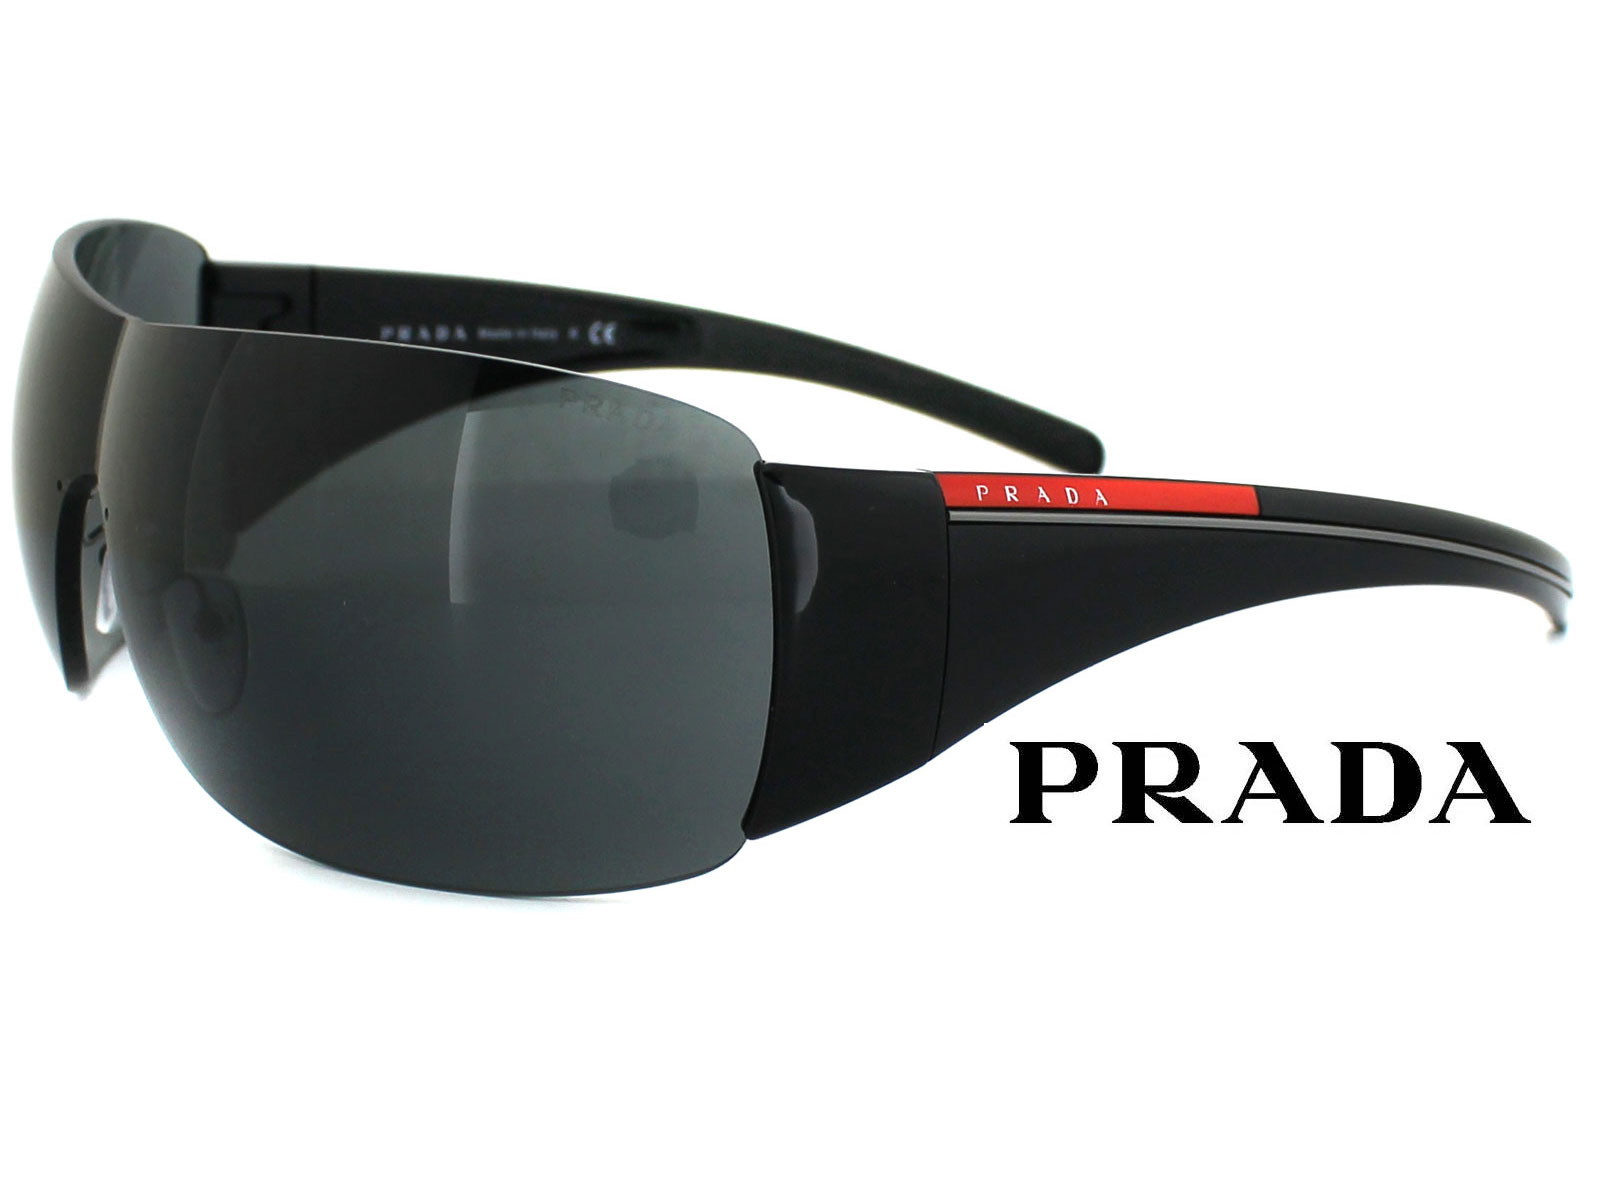 Prada Sport coming soon!